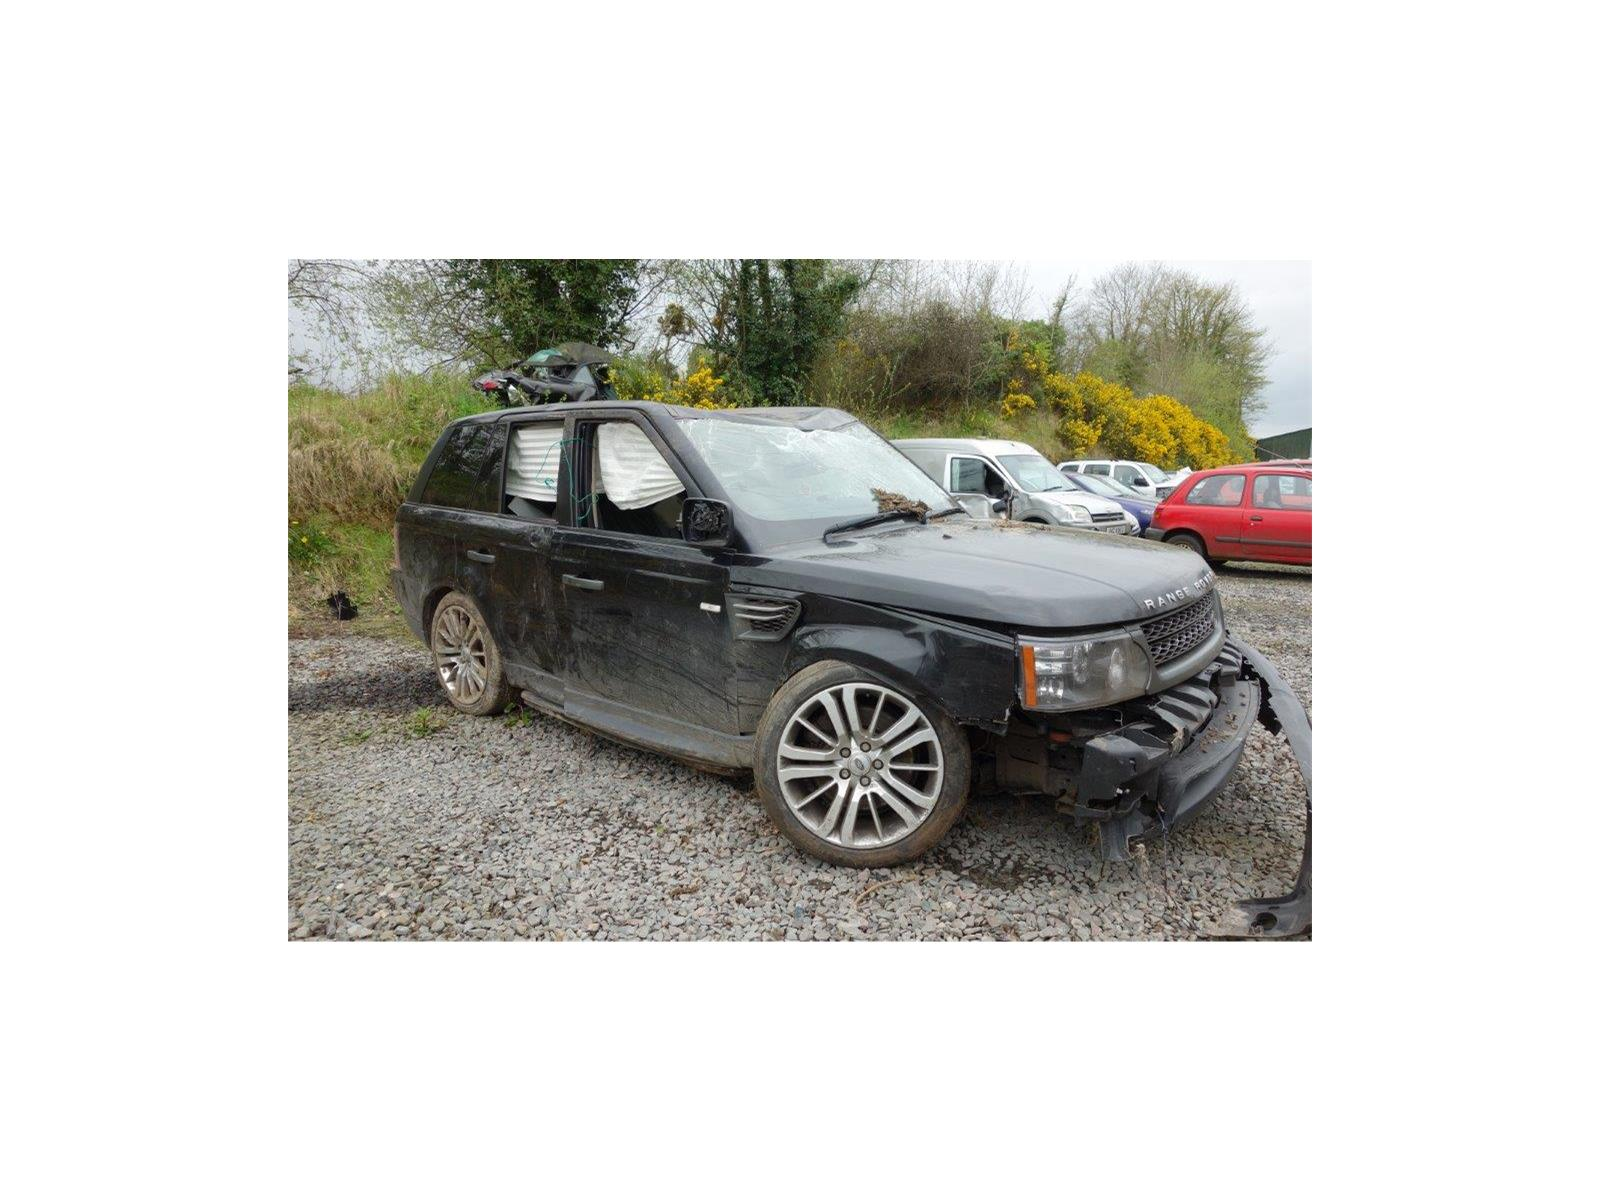 breakers ltd petrol parts rover hand hills land freelander recycling second details online vehicle used car salvage landrover automatic